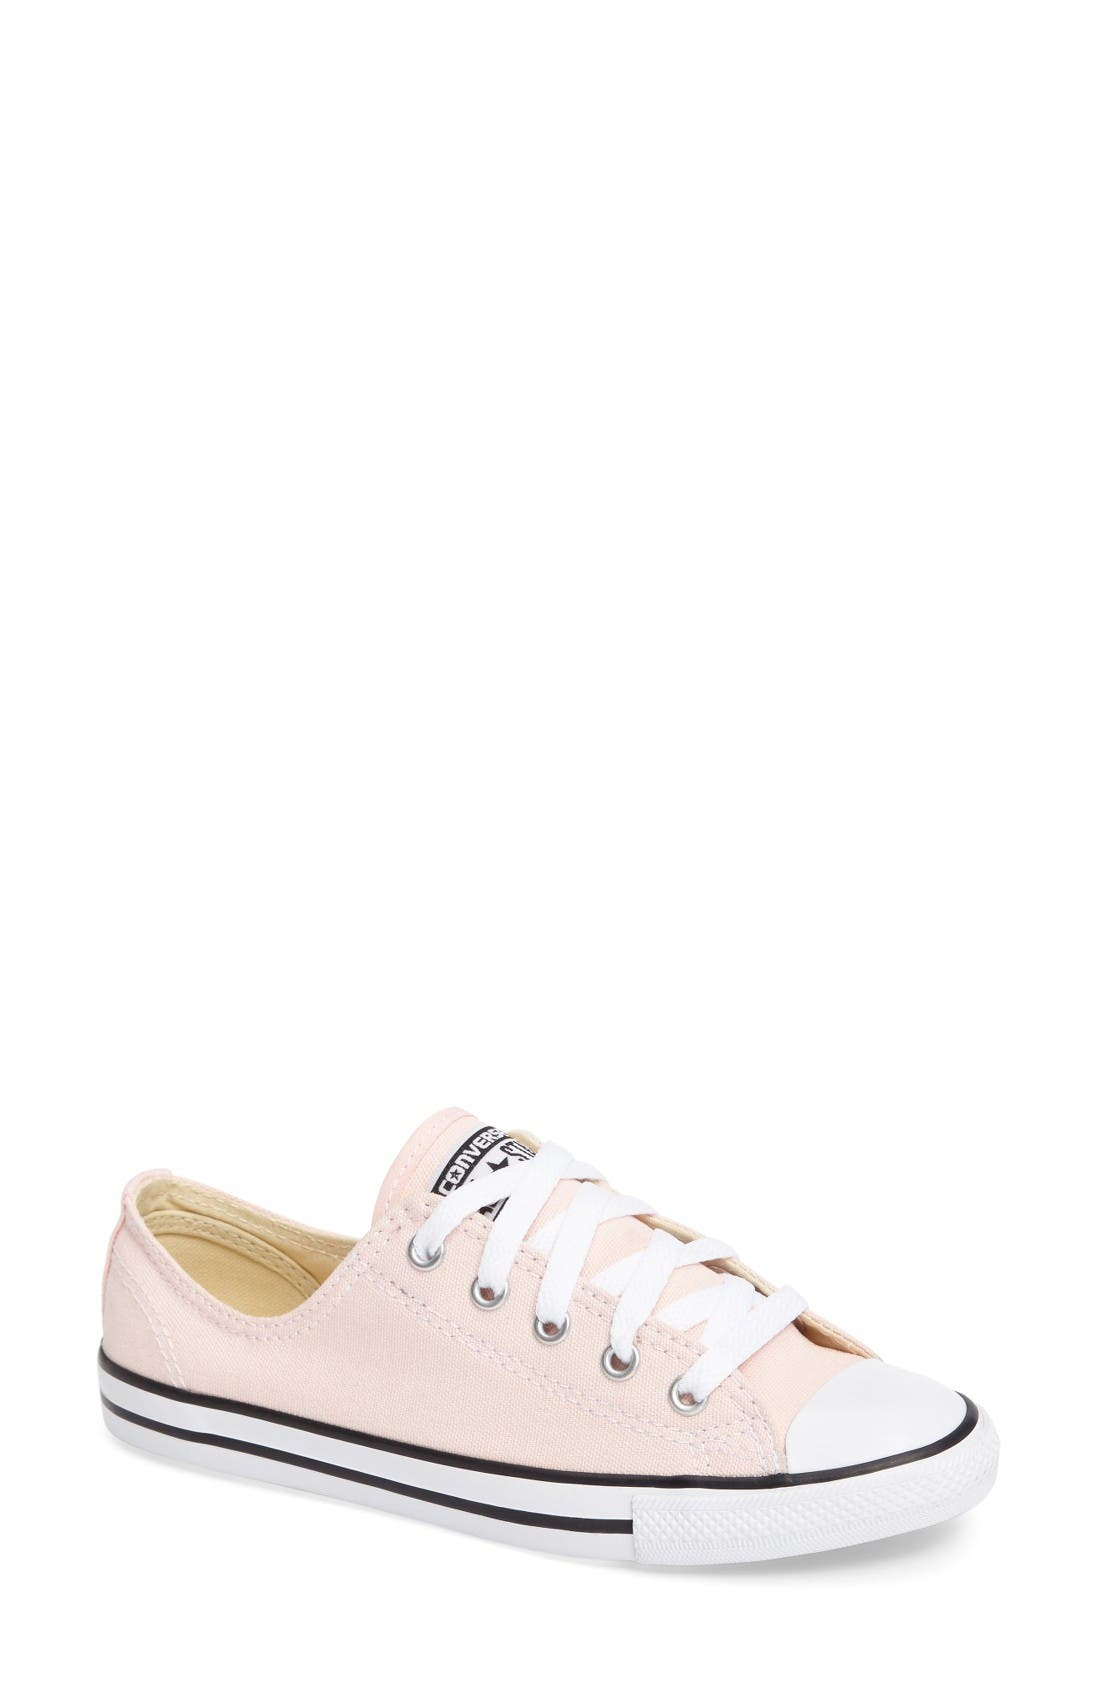 Main Image - Converse Chuck Taylor® All Star® 'Dainty' Low Top Sneaker (Women)